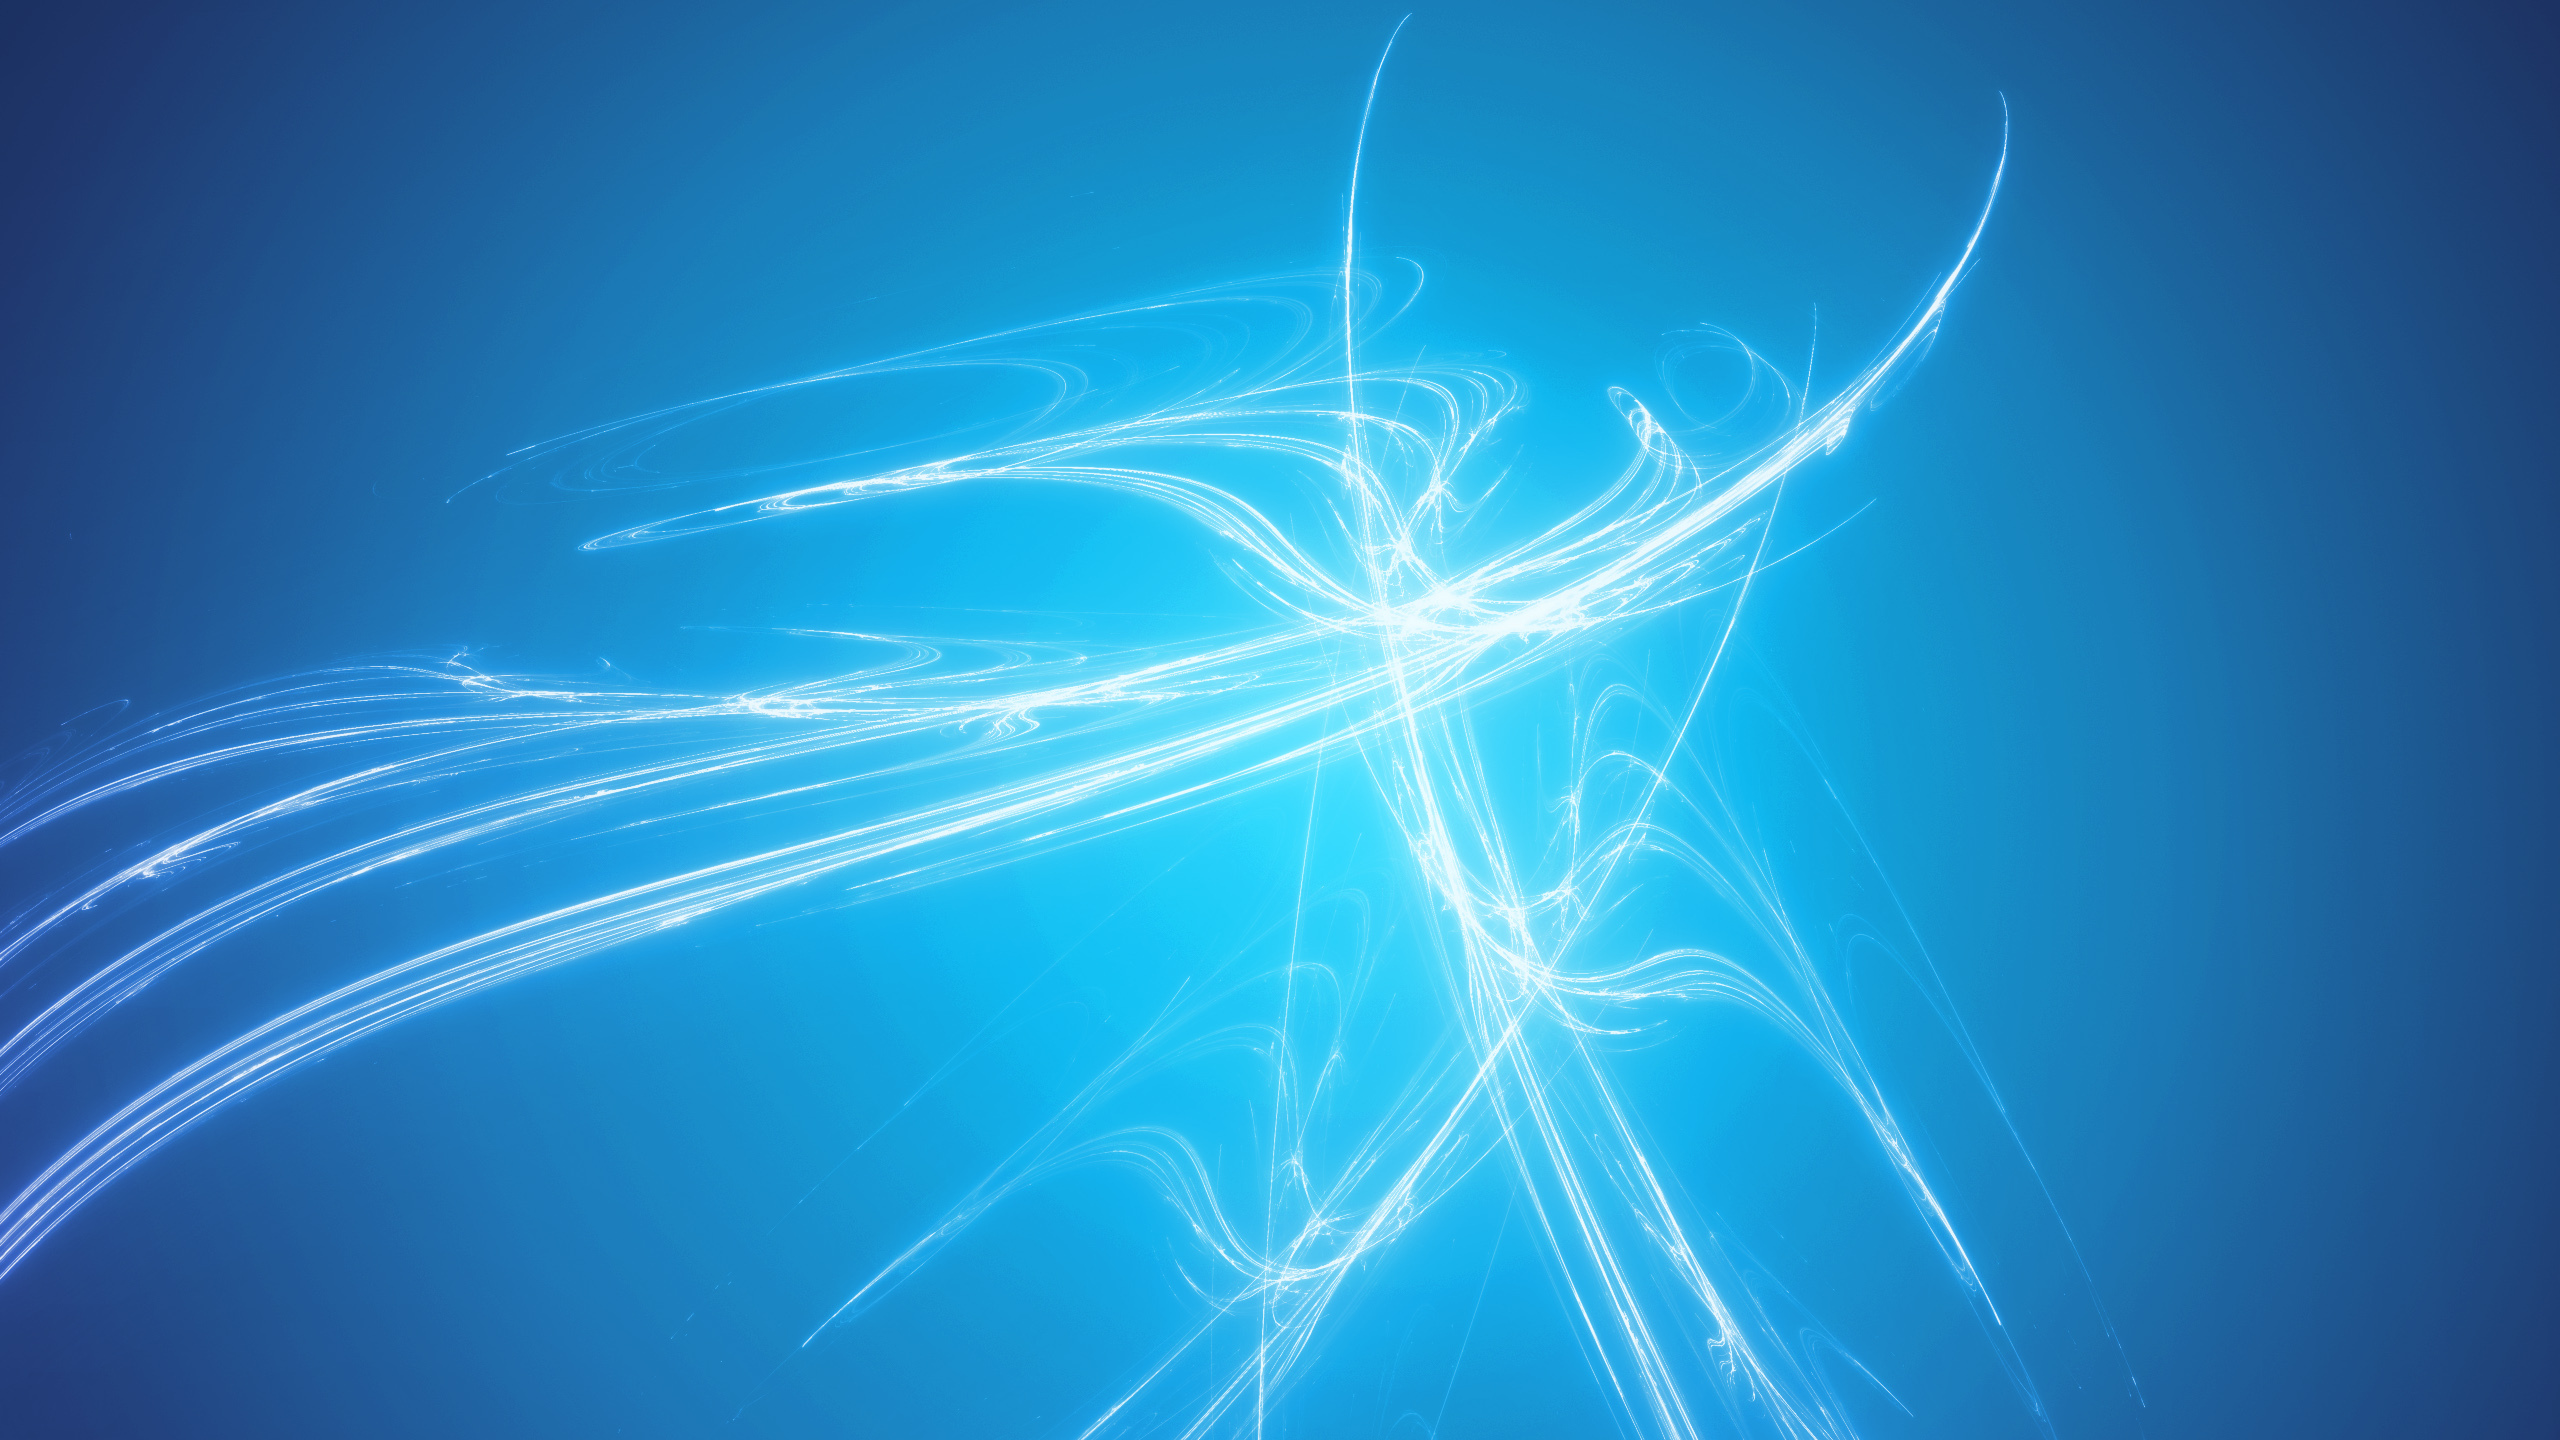 Light Blue Background 2560x1440